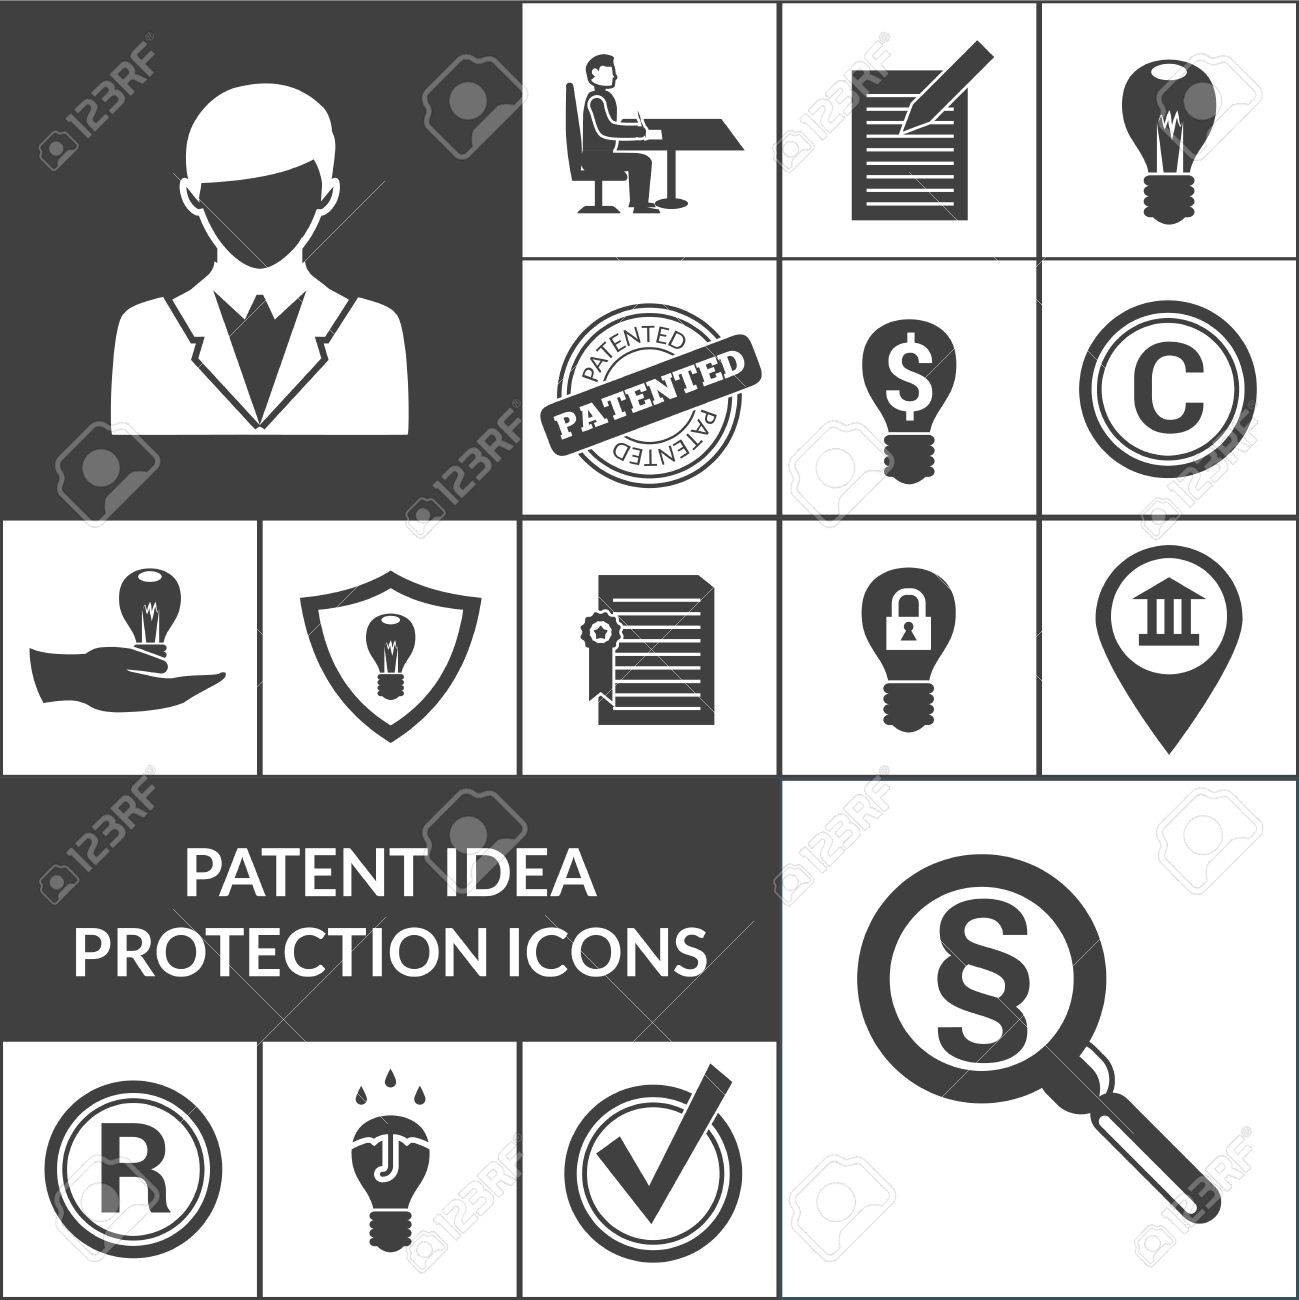 Patent idea protection and intellectual property icons black patent idea protection and intellectual property icons black isolated vector illustration stock vector 47626858 biocorpaavc